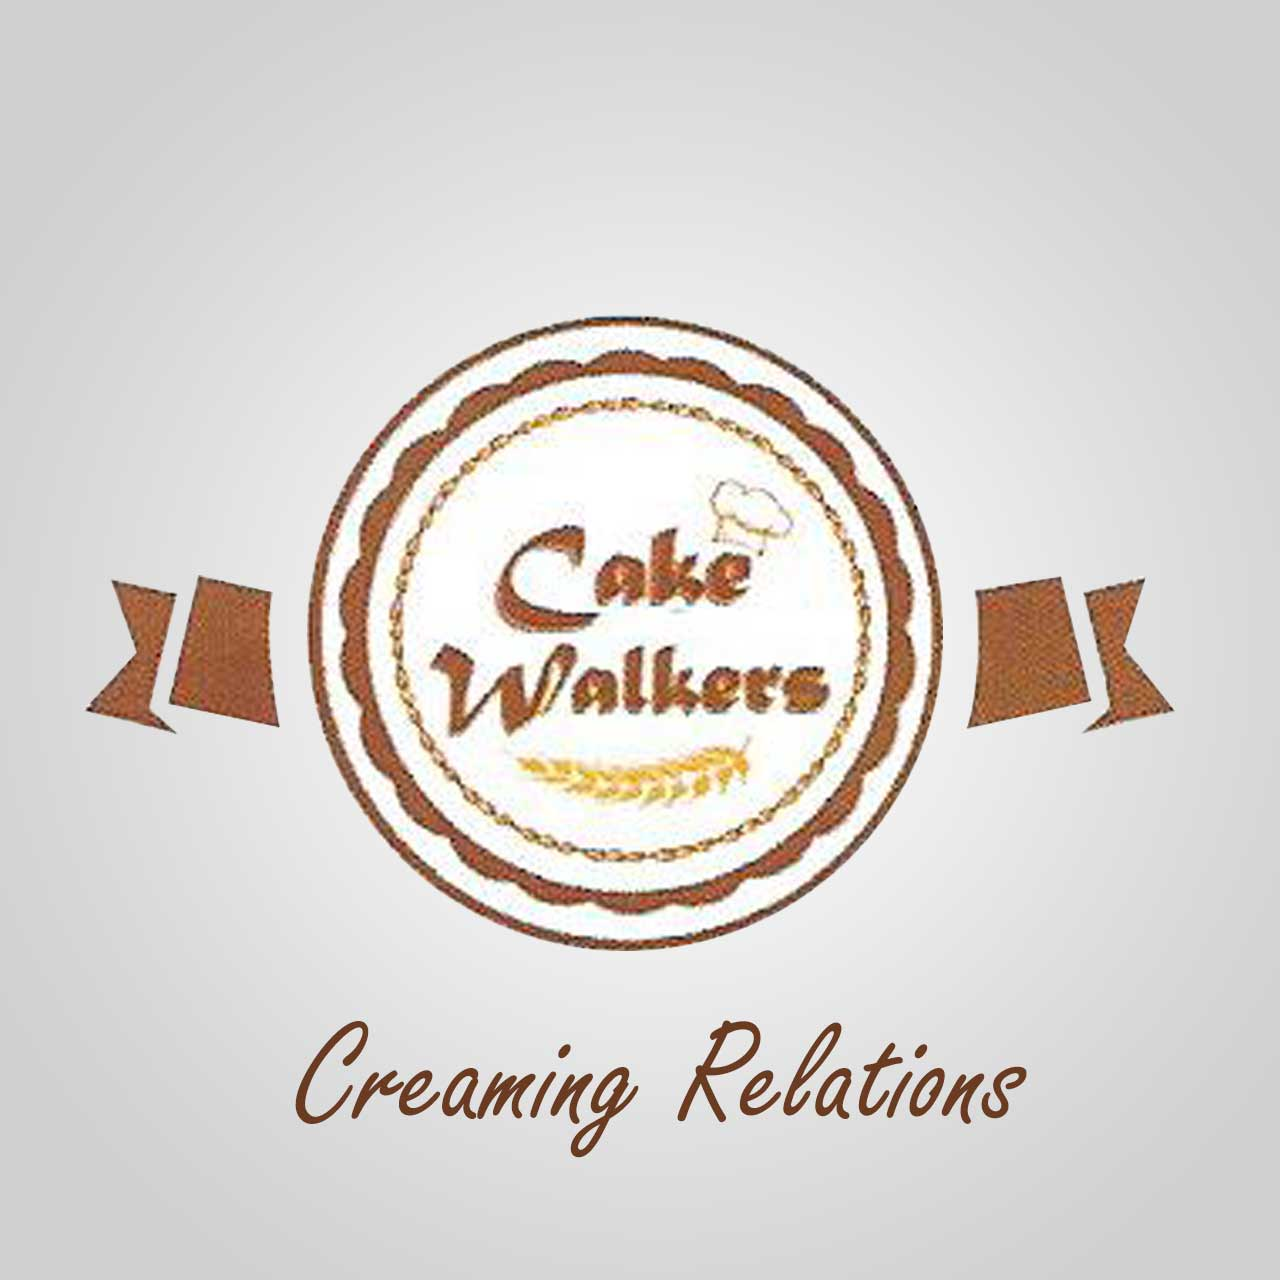 Cafe Walkers | Creaming Relations